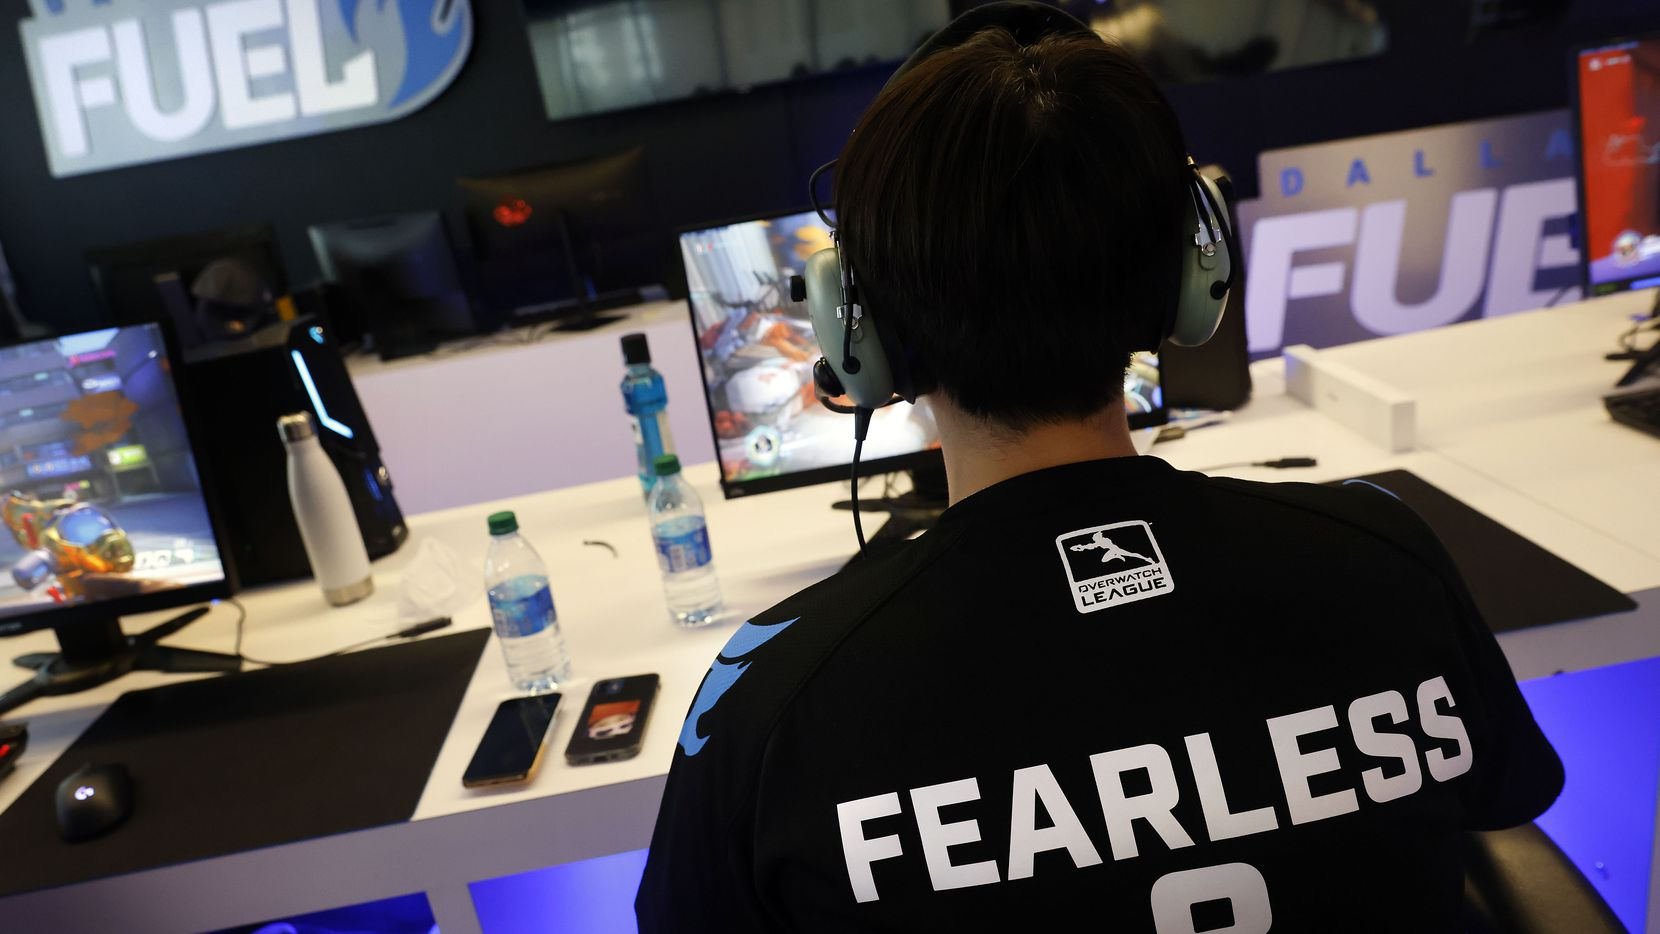 Dallas Fuel Overwatch League player Lee 'Fearless' Eui-Seok practices with his teammates ahead of their season opener against Houston at Envy Gaming Headquarters in Dallas, Monday, March 29, 2021. (Tom Fox/The Dallas Morning News)